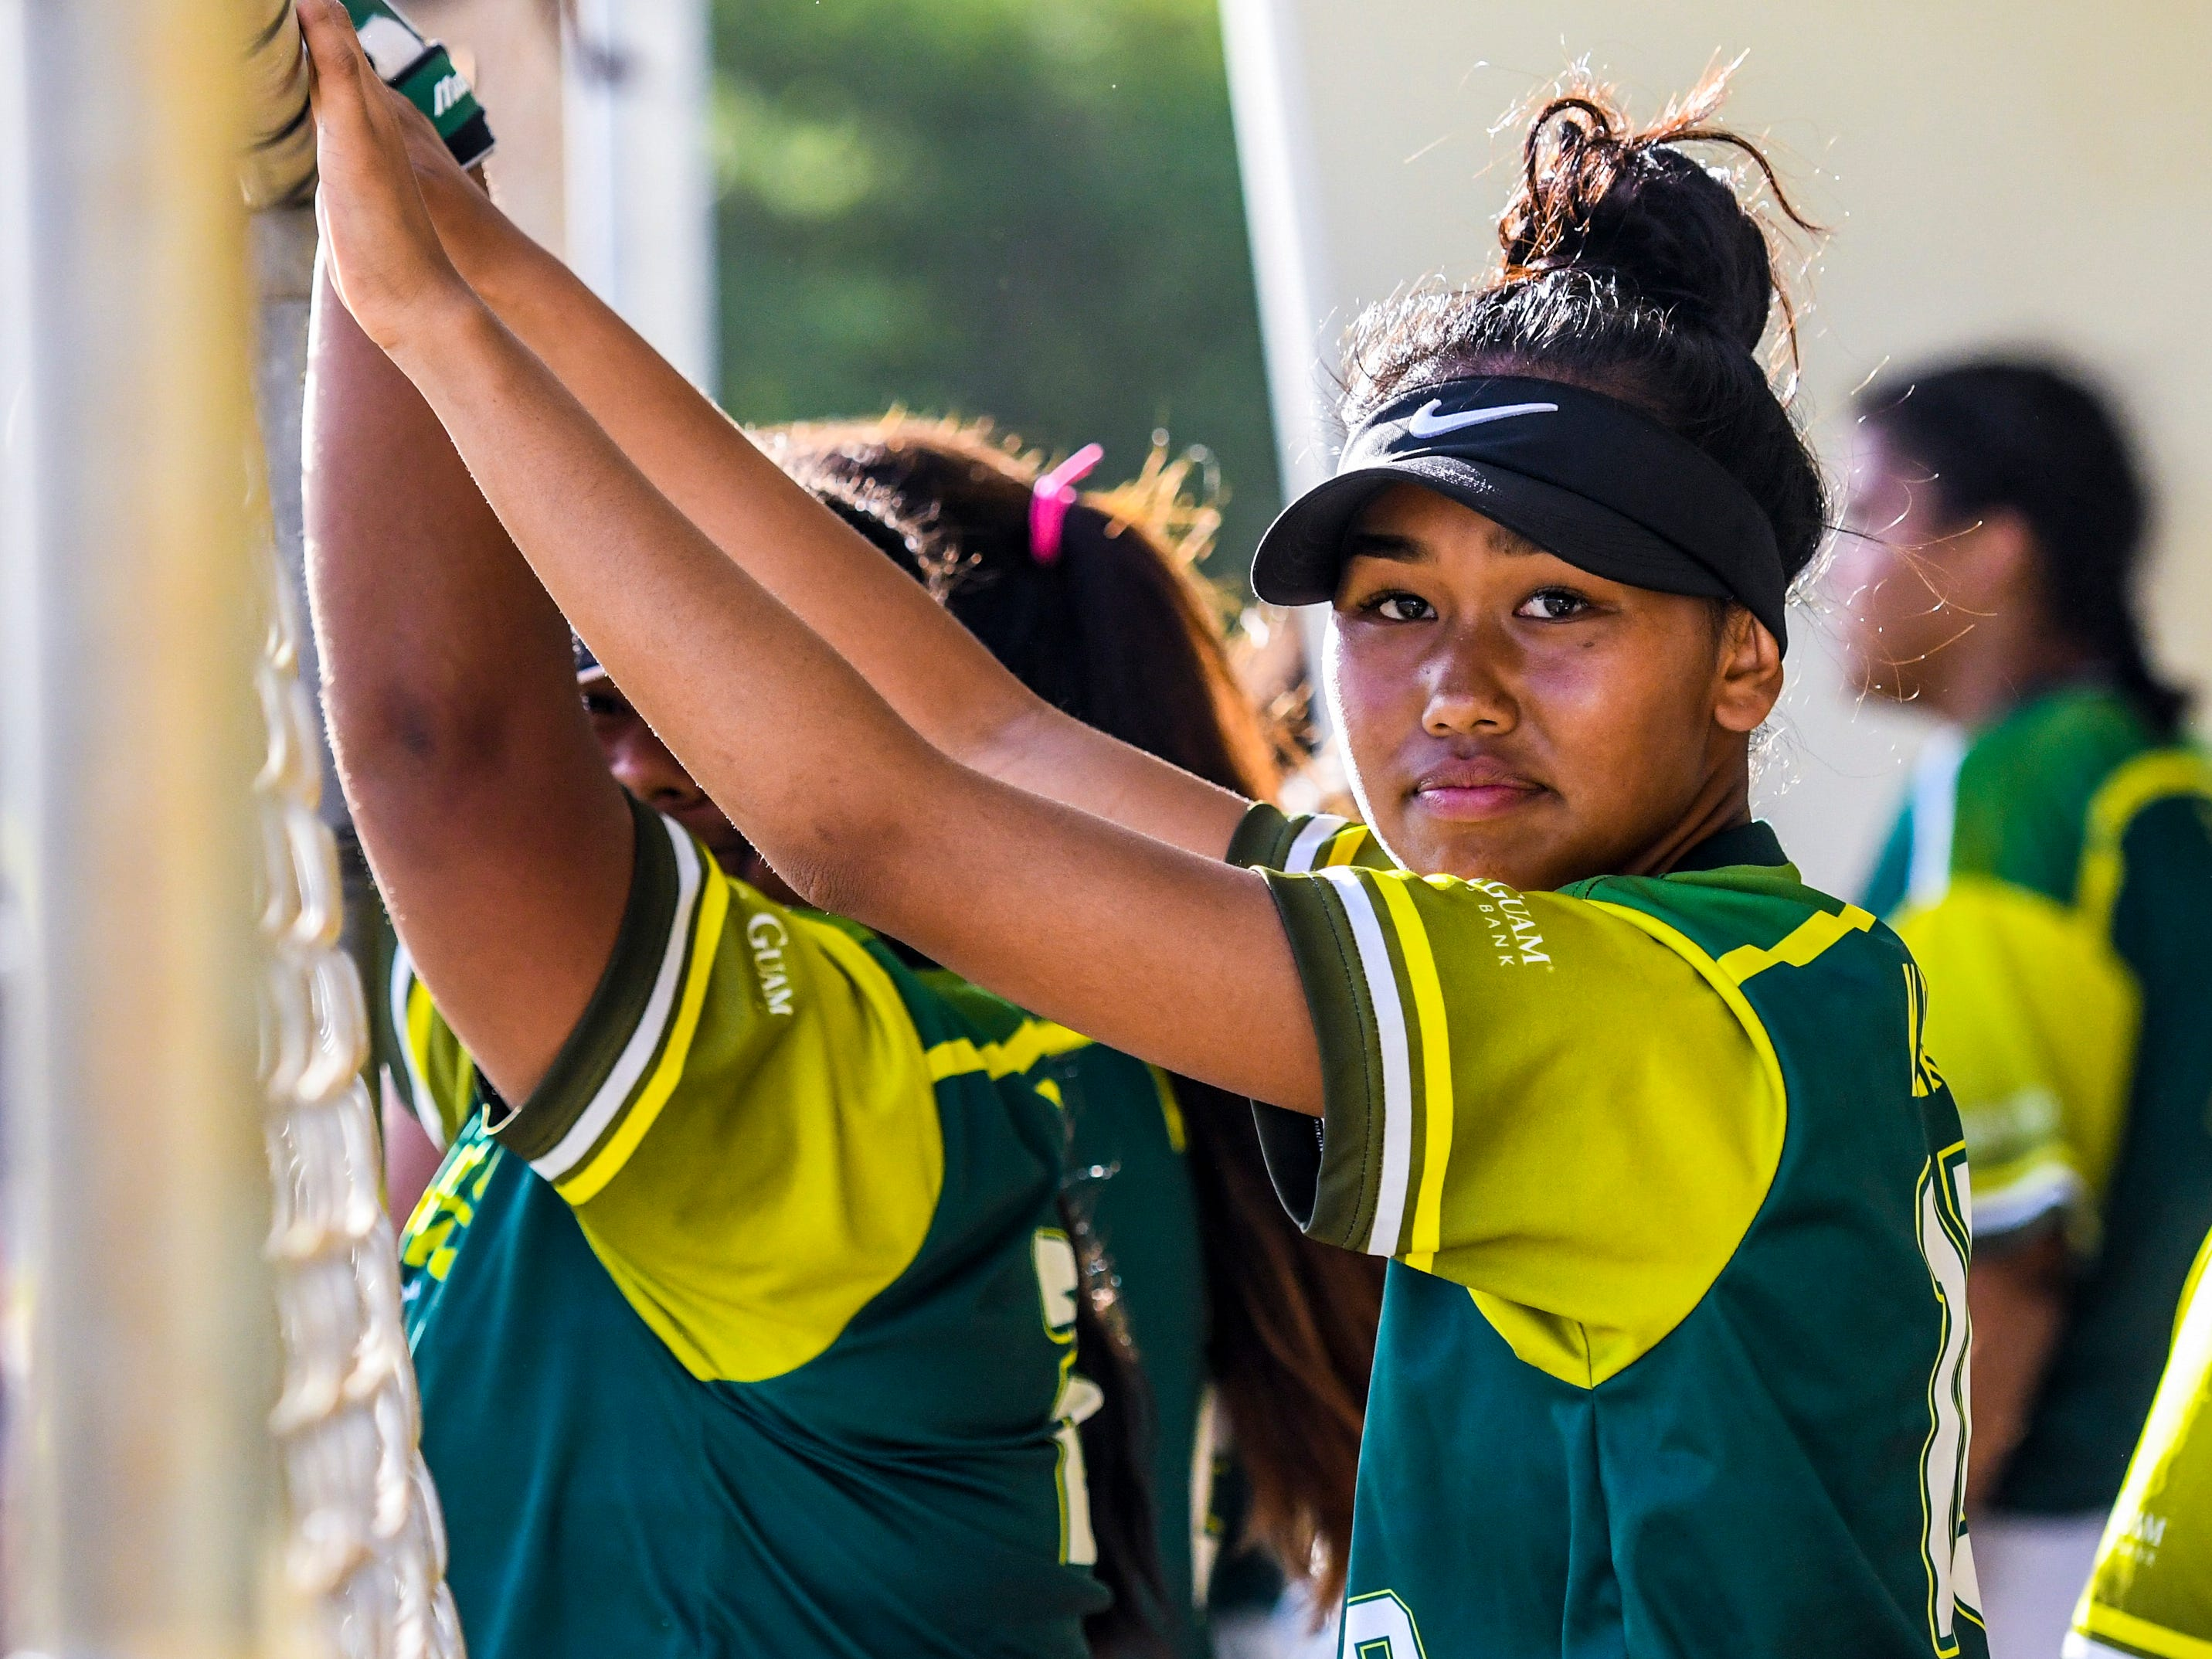 The John F. Kennedy Islanders took on the challenge of the Guam High Panthers in IIAAG girls softball action on the diamond at the JFK High School campus in Tamuning on Thursday, Feb. 7, 2019.